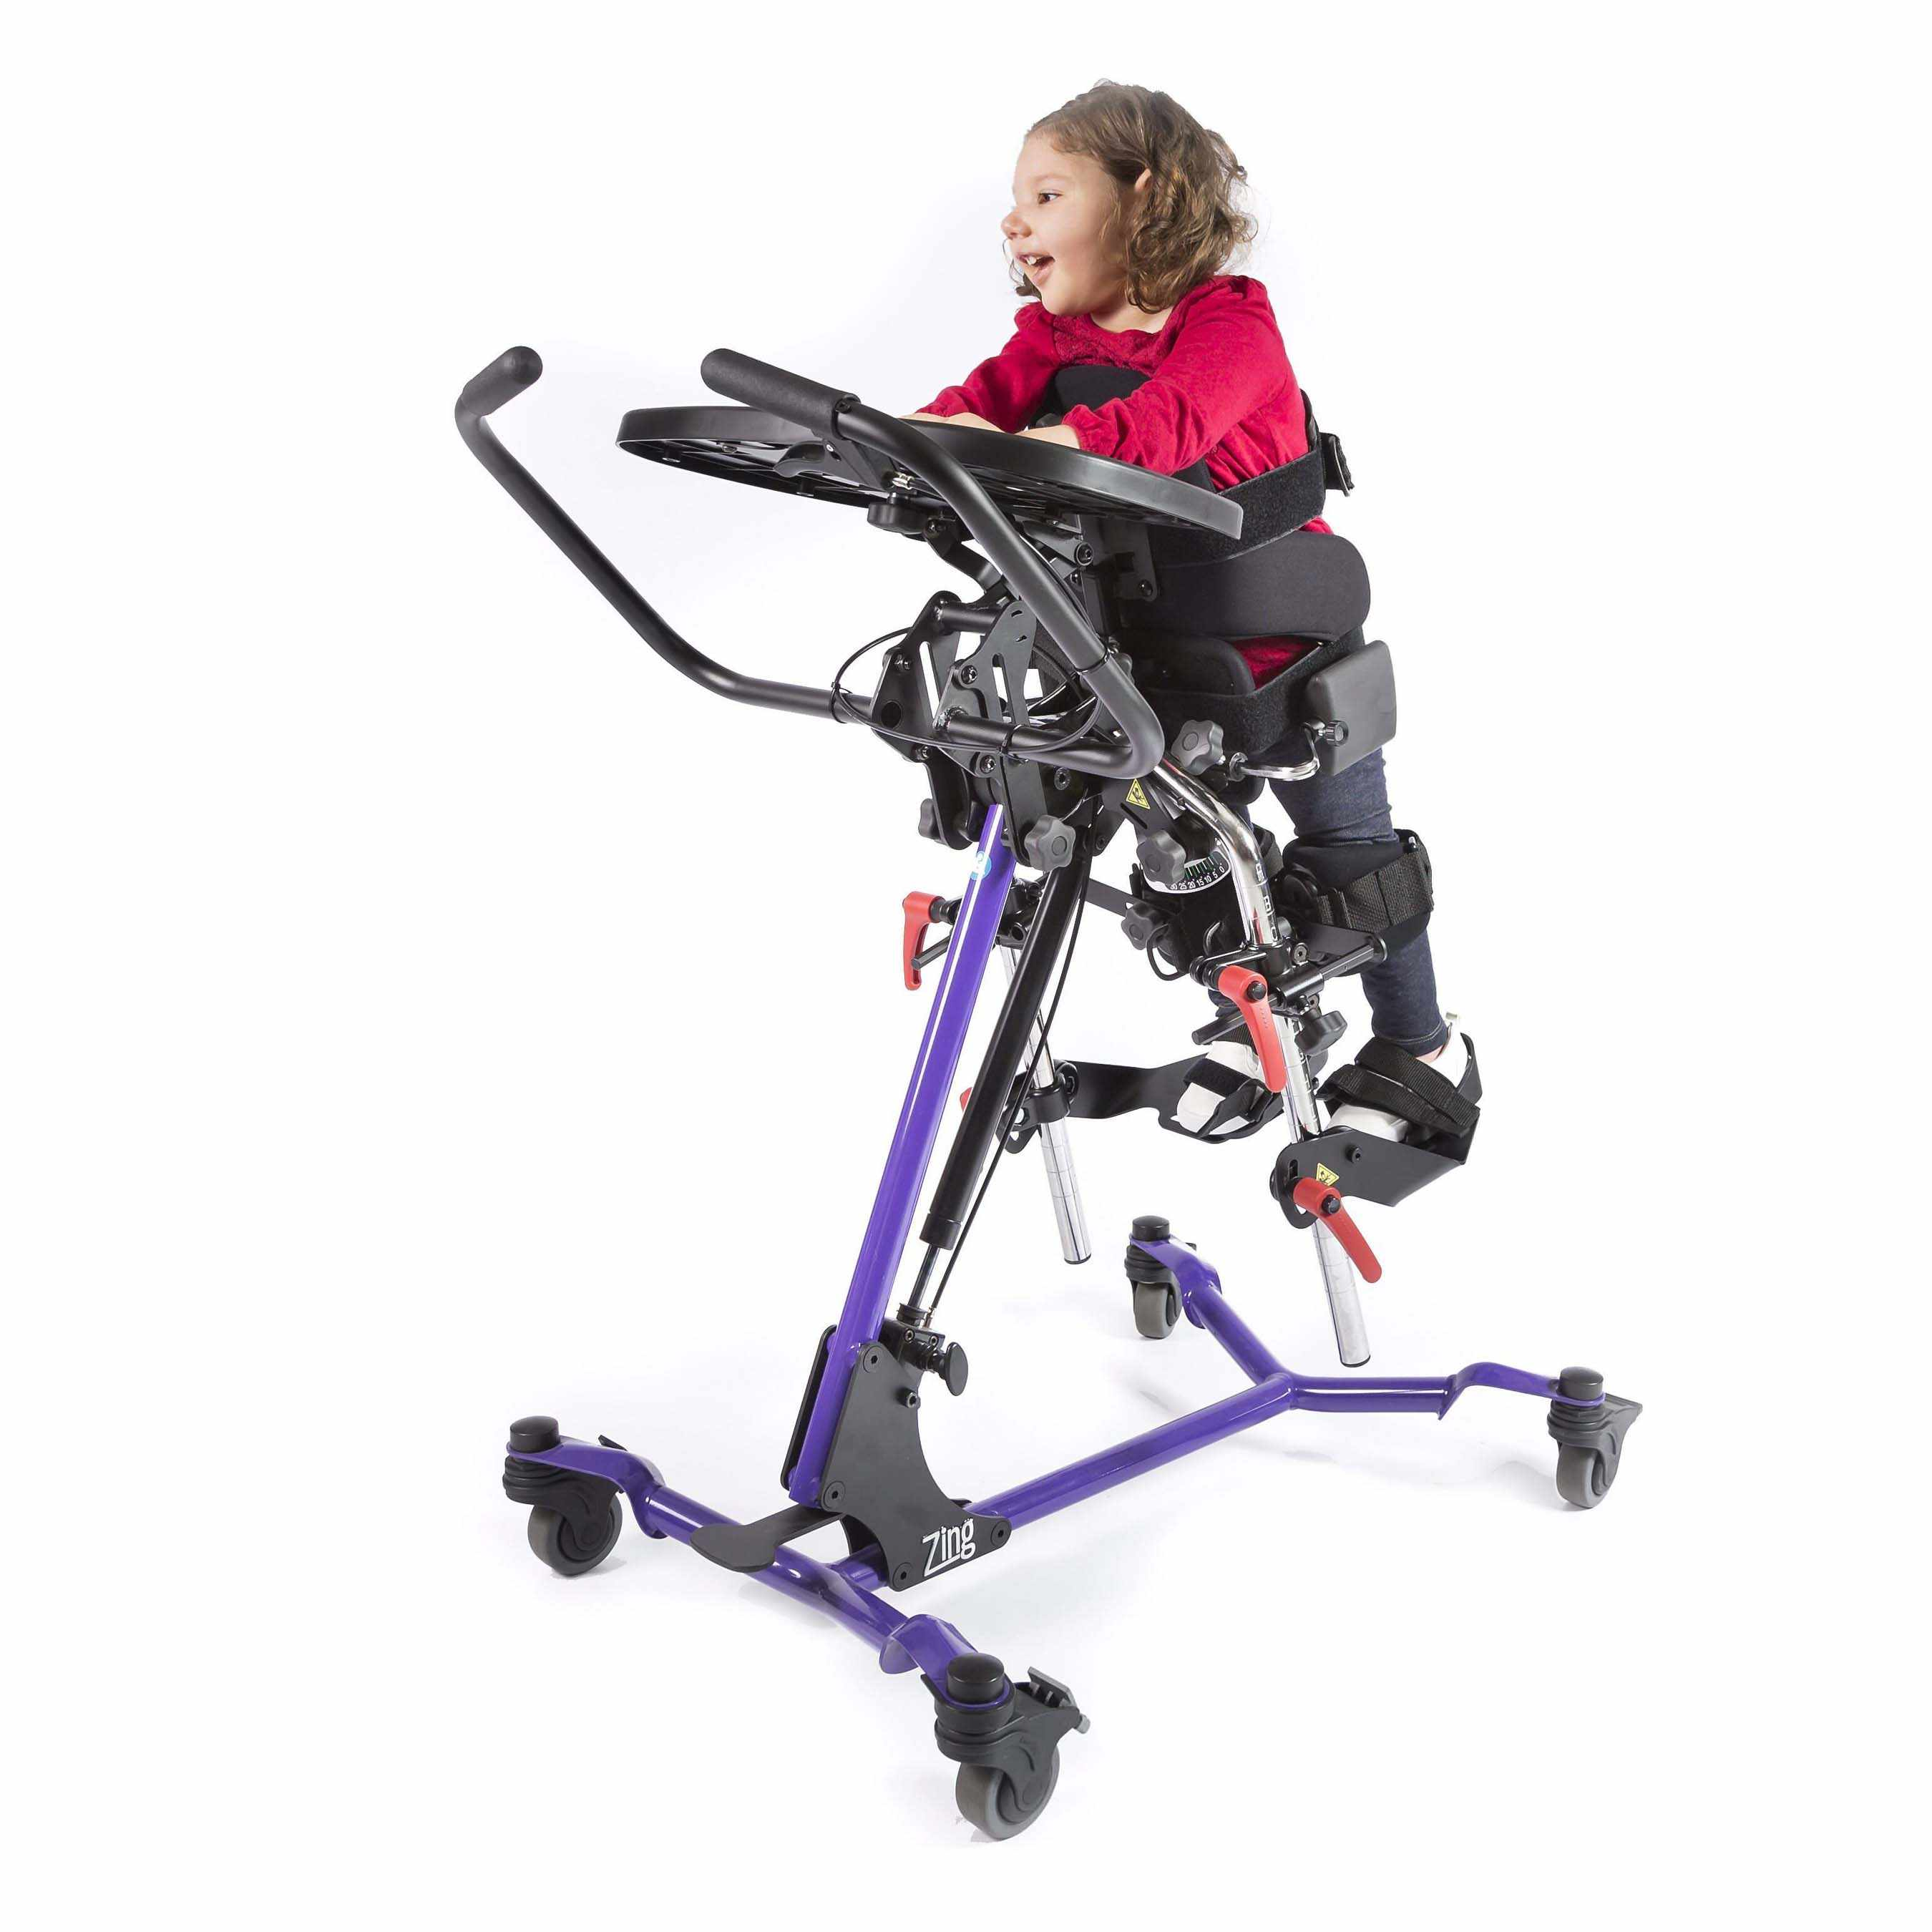 EasyStand zing prone size 1 standing frame